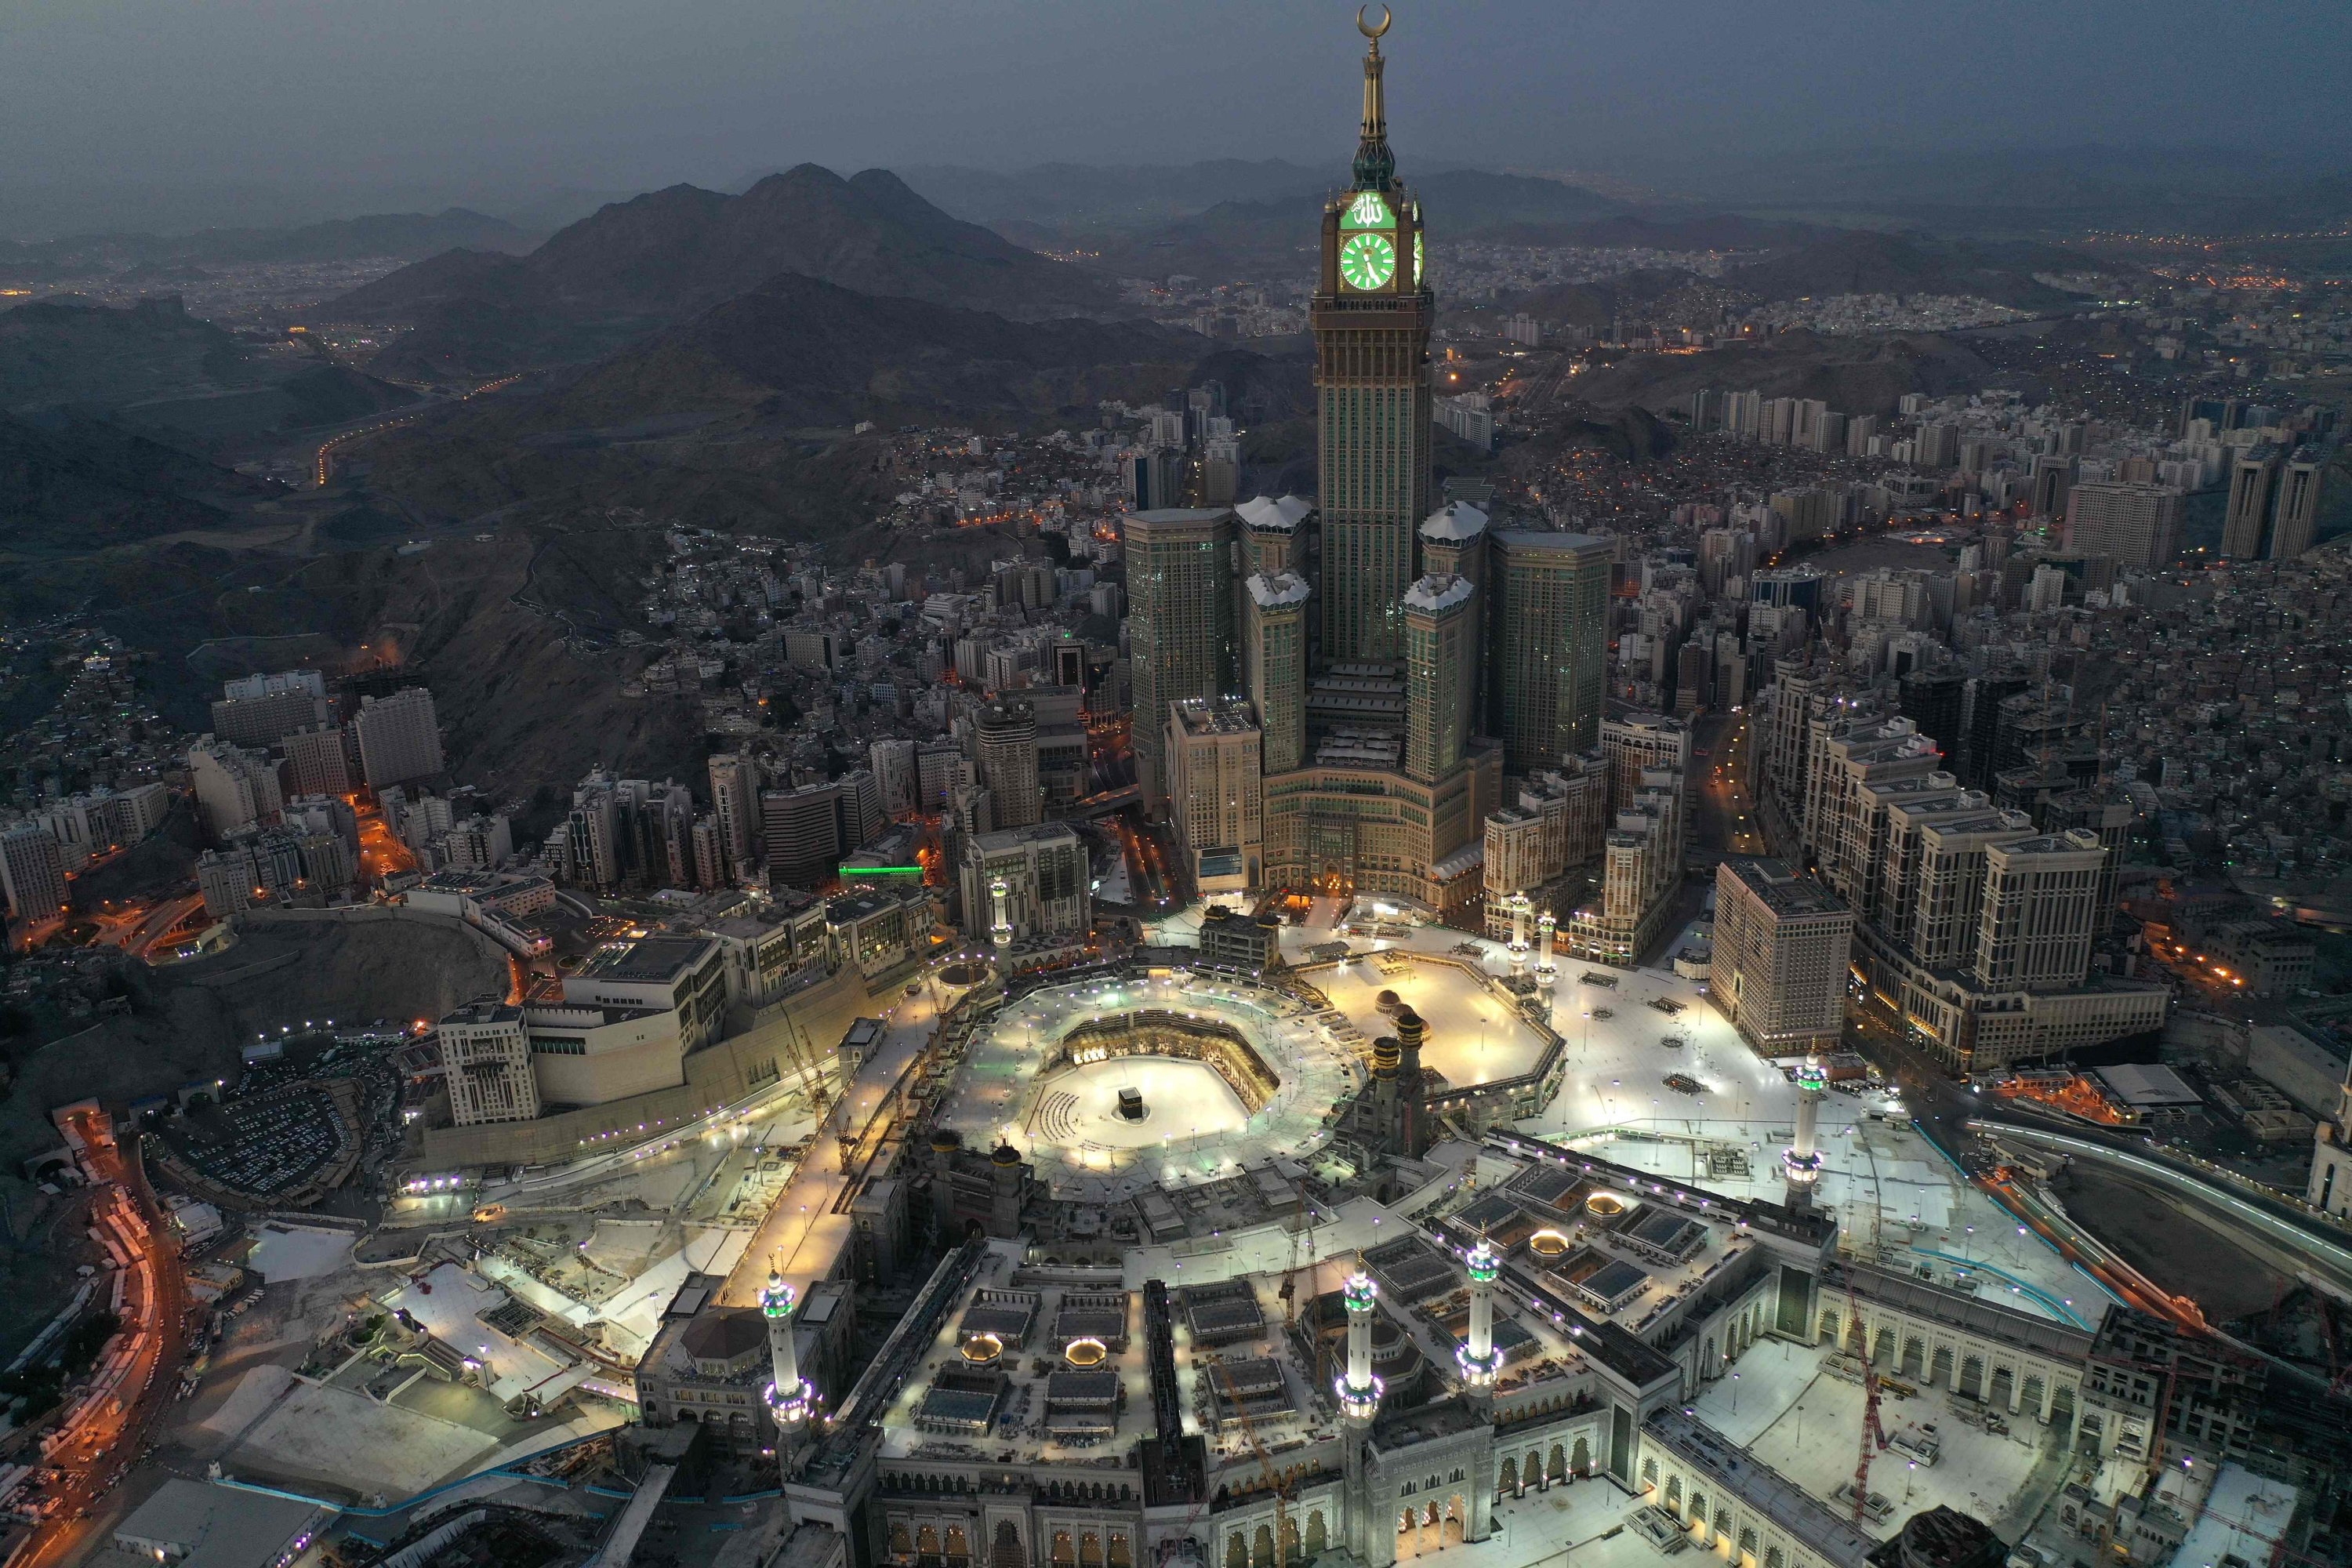 Mecca To Allow Entry From May 31 After 2 Month Coronavirus Shutdown Daily Sabah